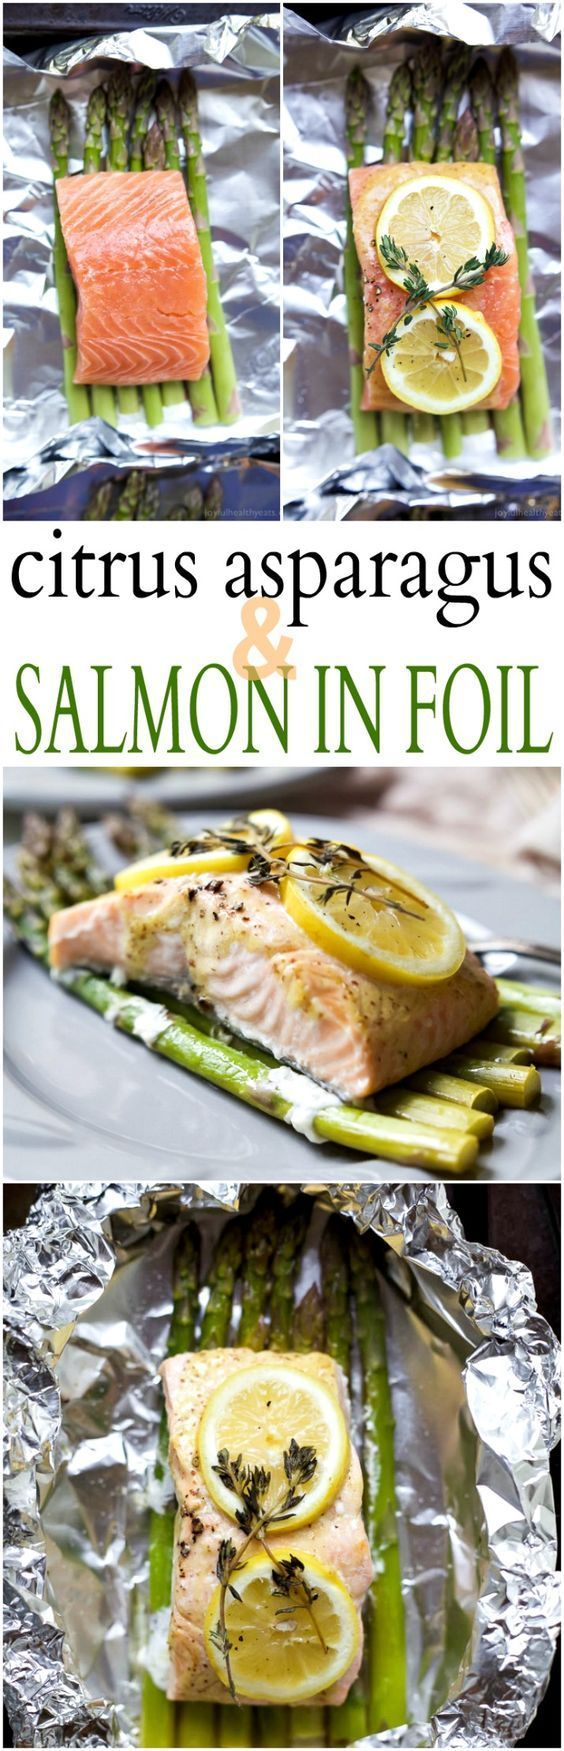 Citrus Asparagus & Salmon in Foil - so easy to make, loaded with roasted garlic and citrus flavor, plus clean up is a breeze! Dinner has never been easier! | http://joyfulhealthyeats.com #paleo #glutenfree